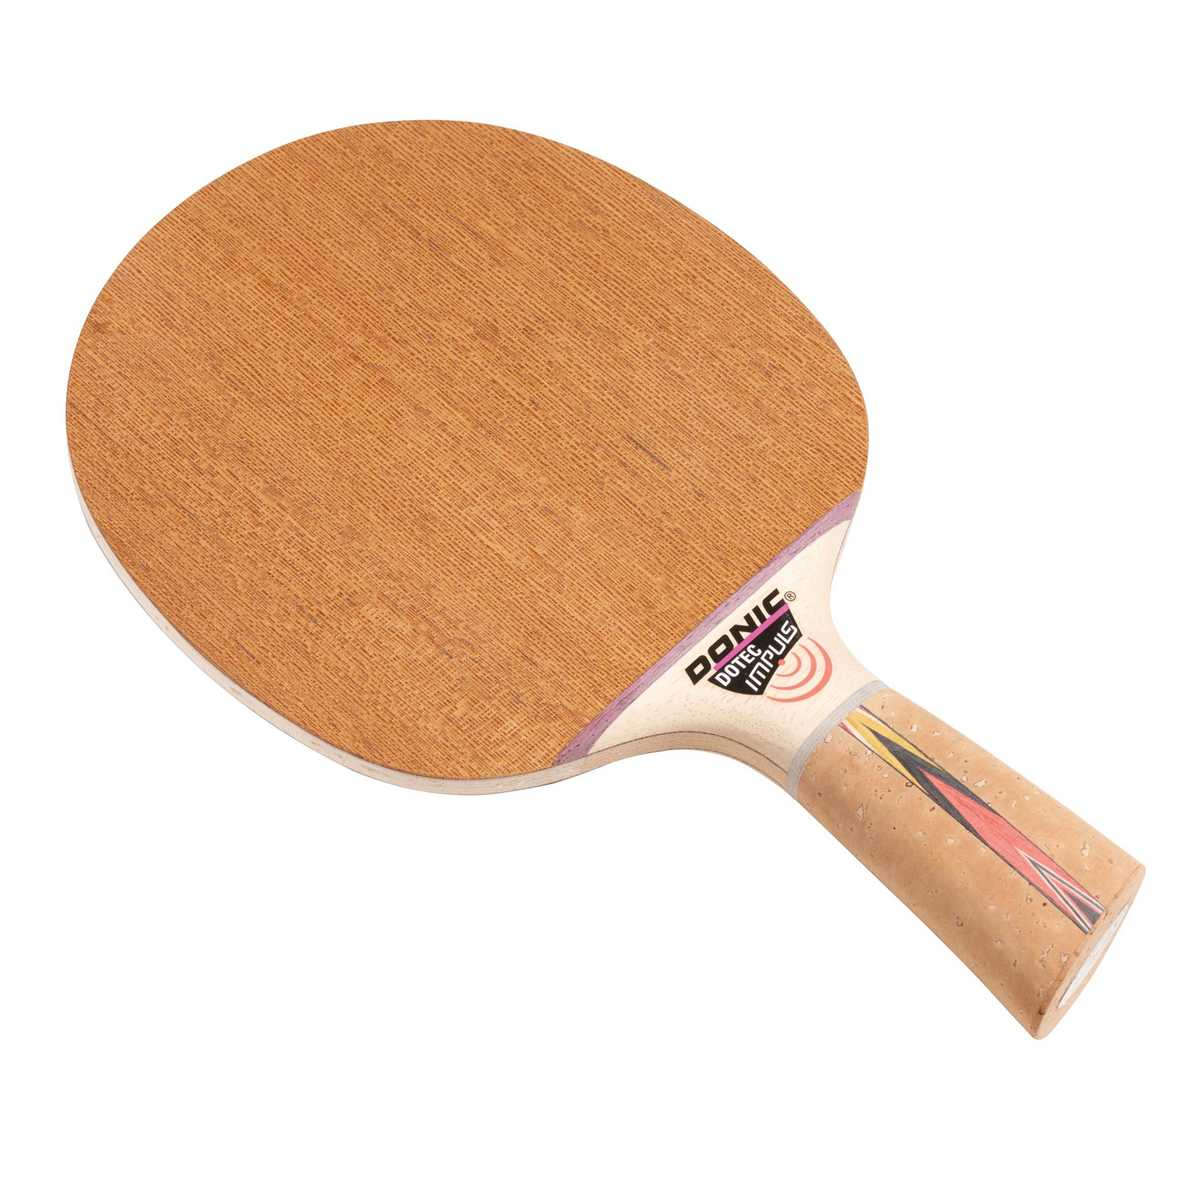 Wack Sport Tennis De Table Donic Tennis De Table Bois Impuls Dotec Wack Sport Les Pros Du